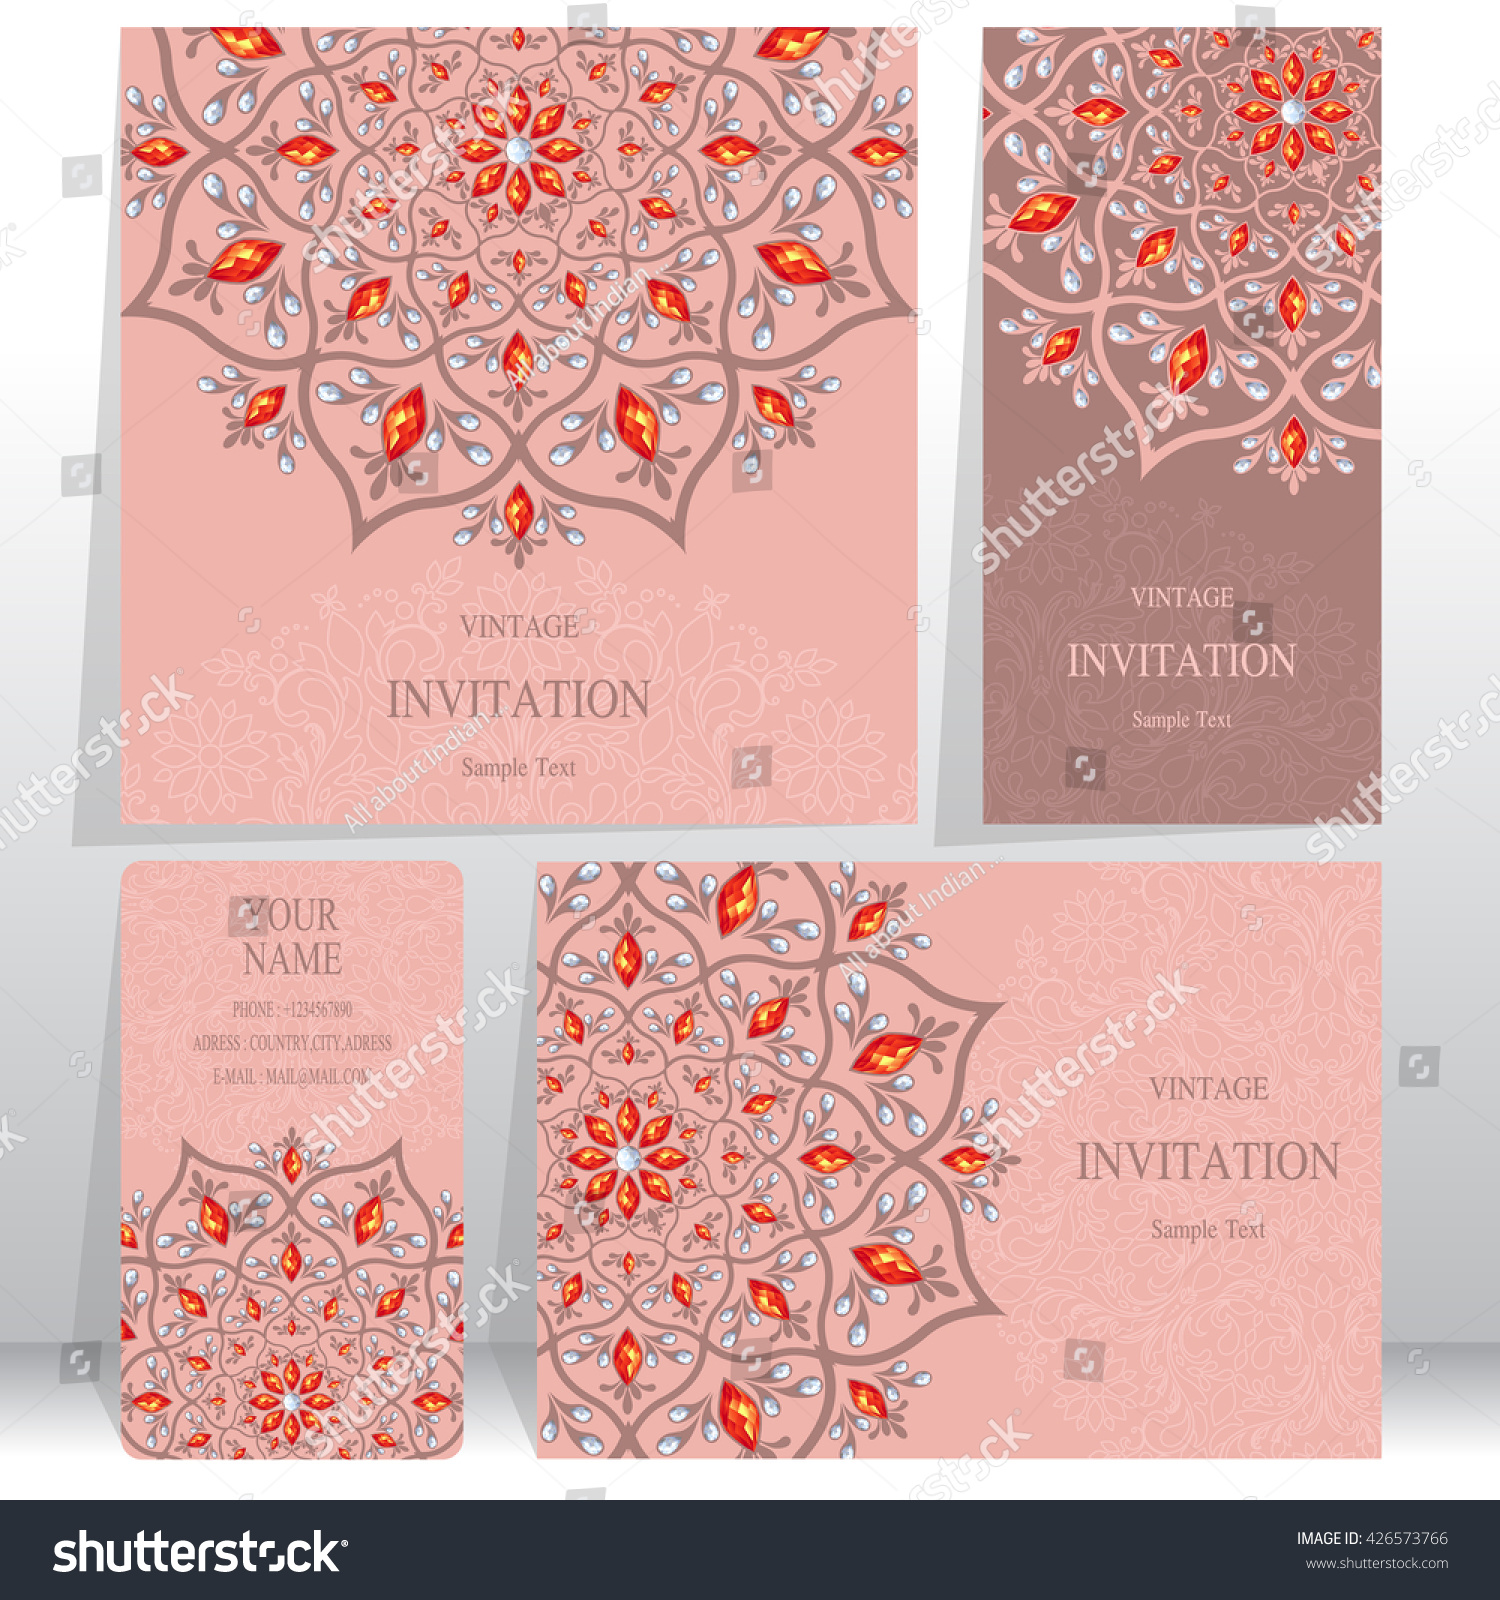 Set Wedding Invitation Cardsbusiness Cards Card Stock Vector ...